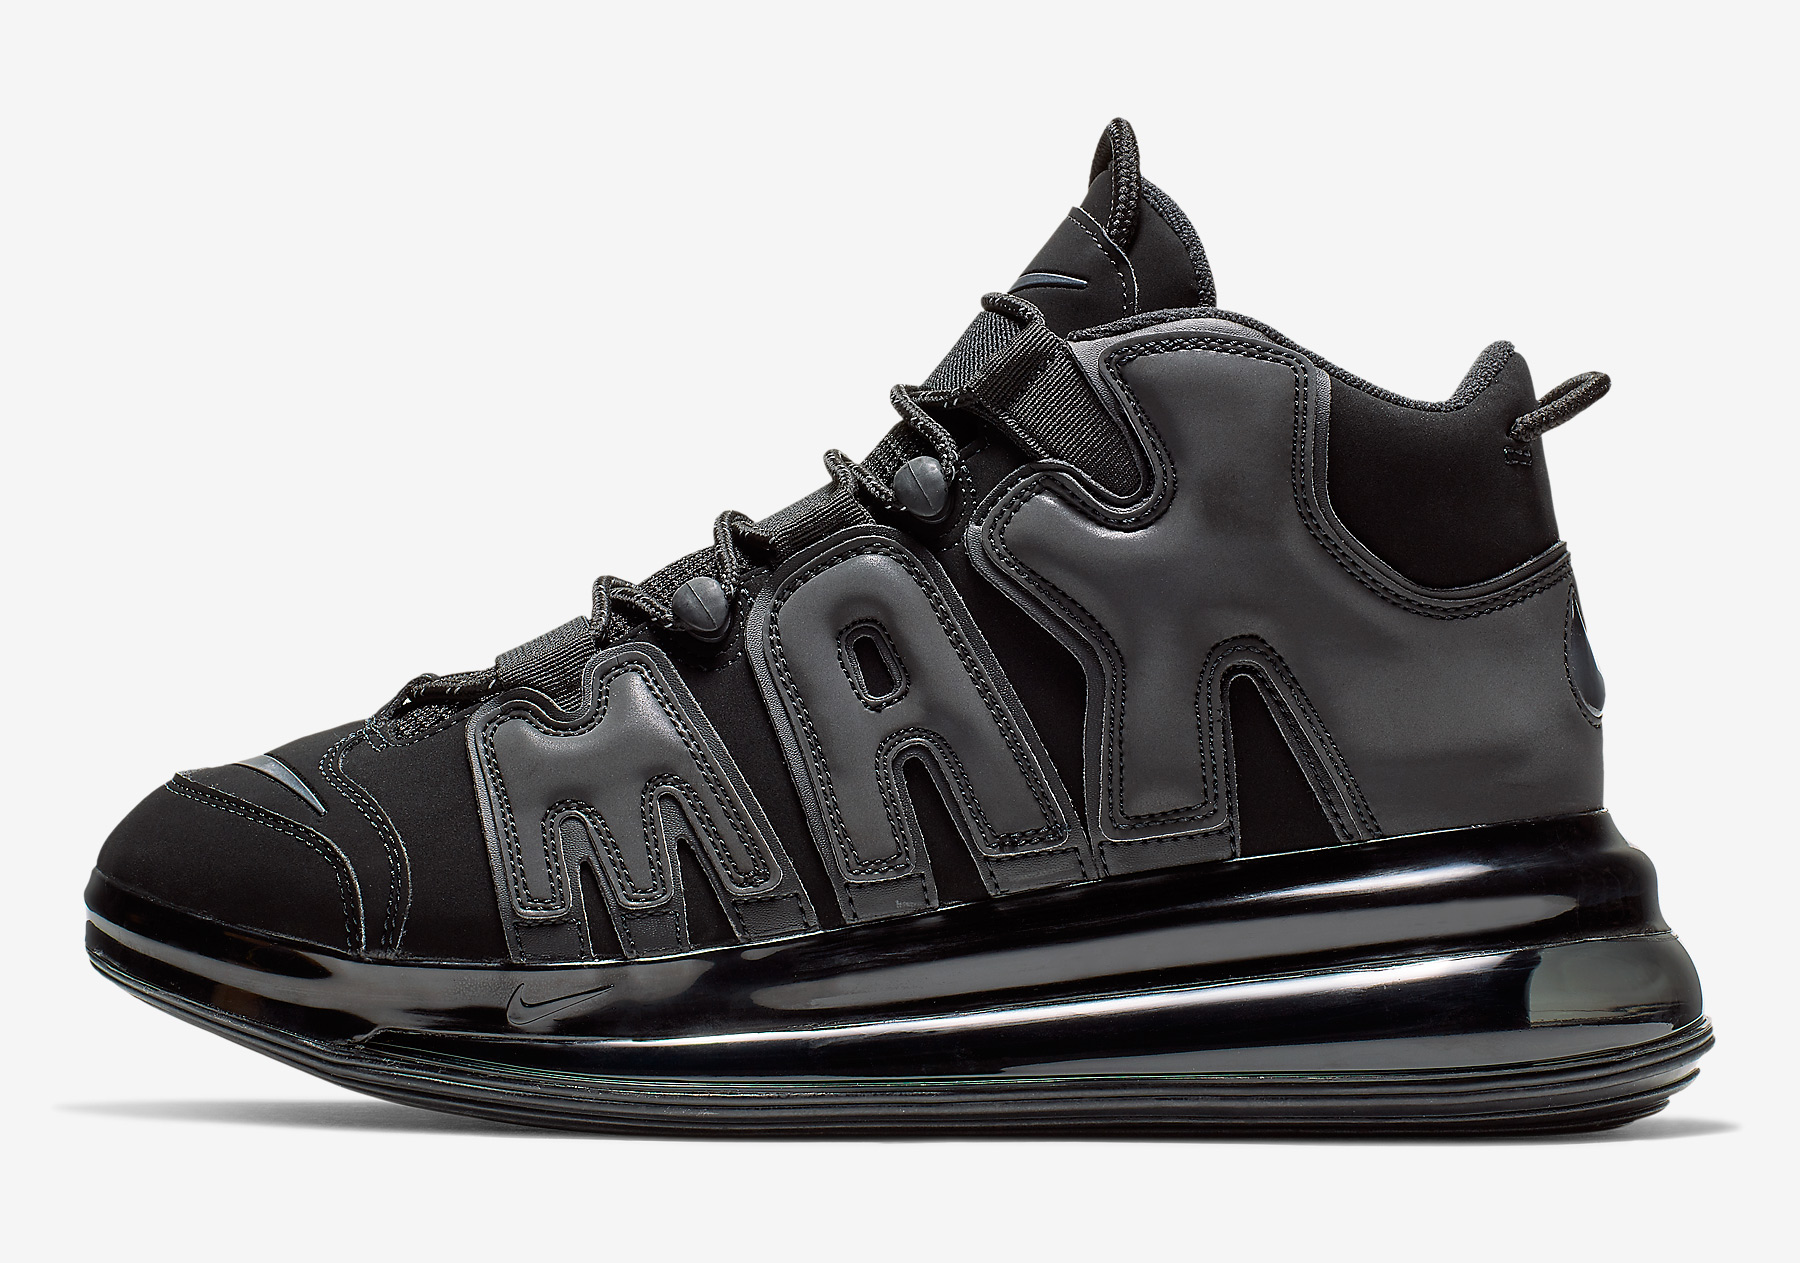 best website 8e9ba 2cd6c Nike Air More Uptempo 720 QS Air More Uptempo 720 Store List Release Date   February 17th, 2019